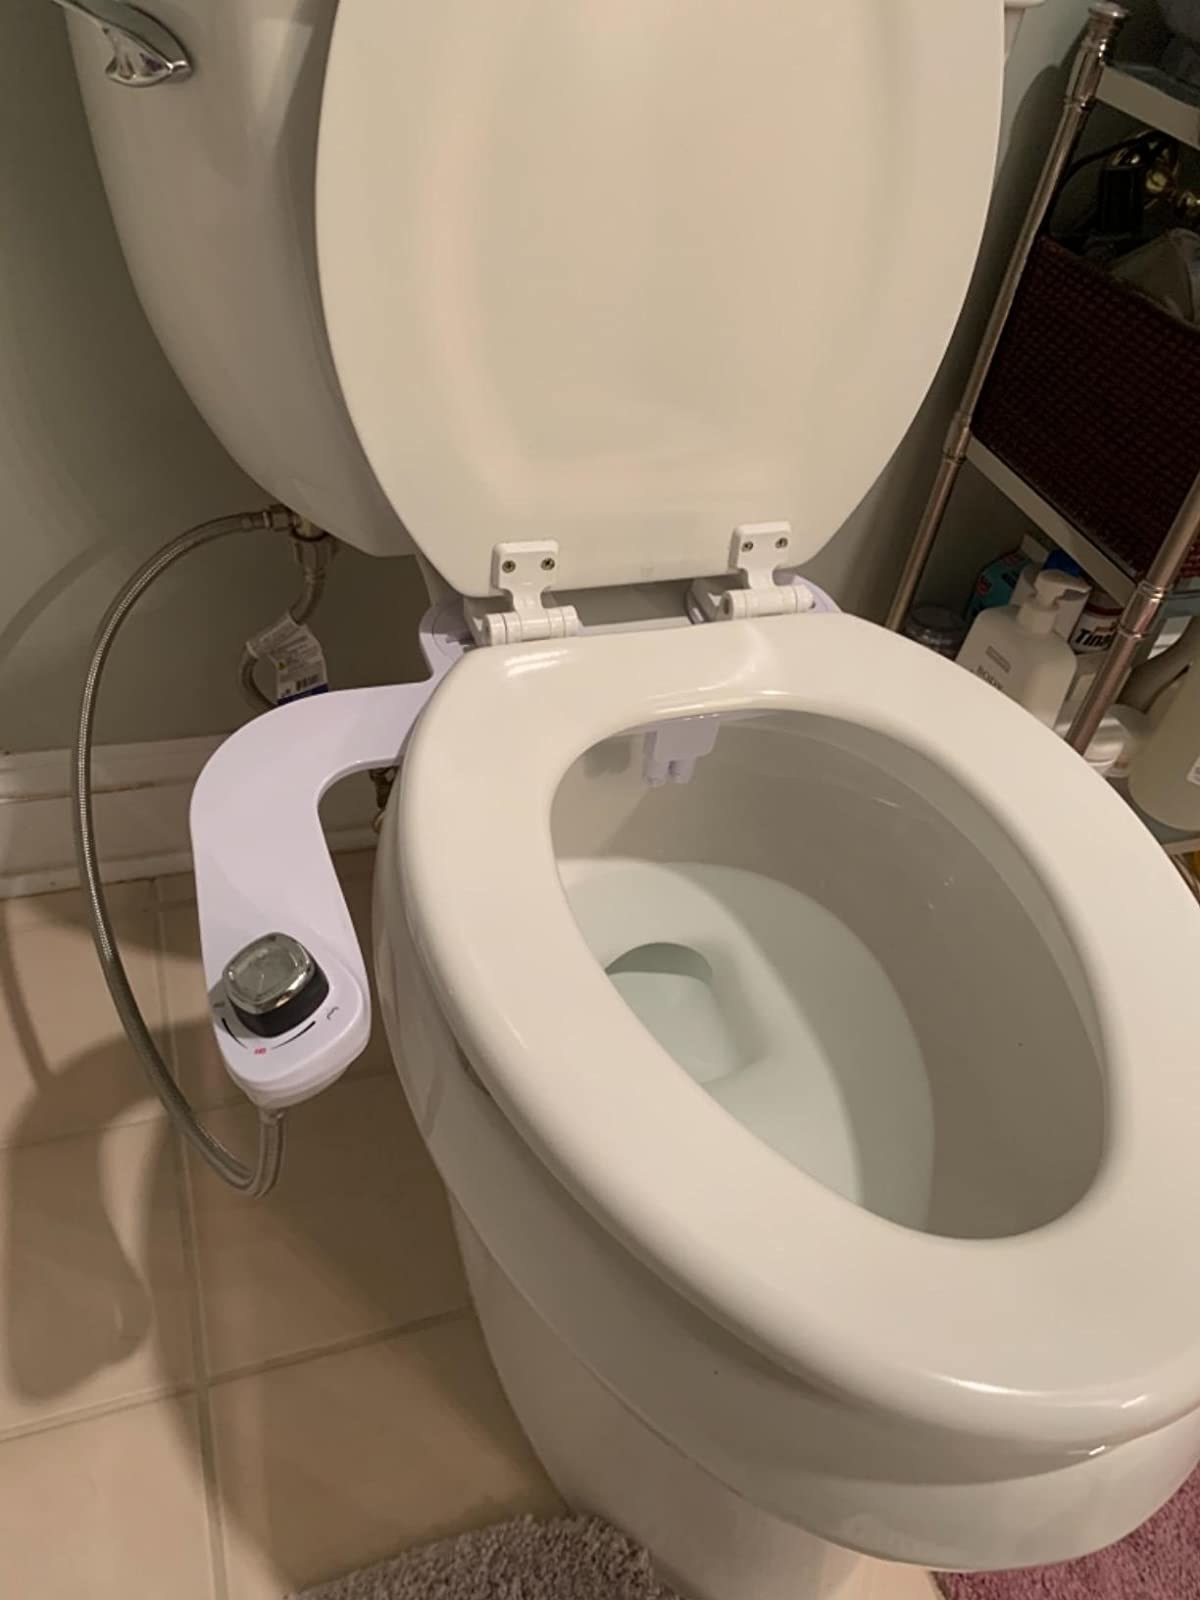 Reviewer photo of the bidet installed on their toilet